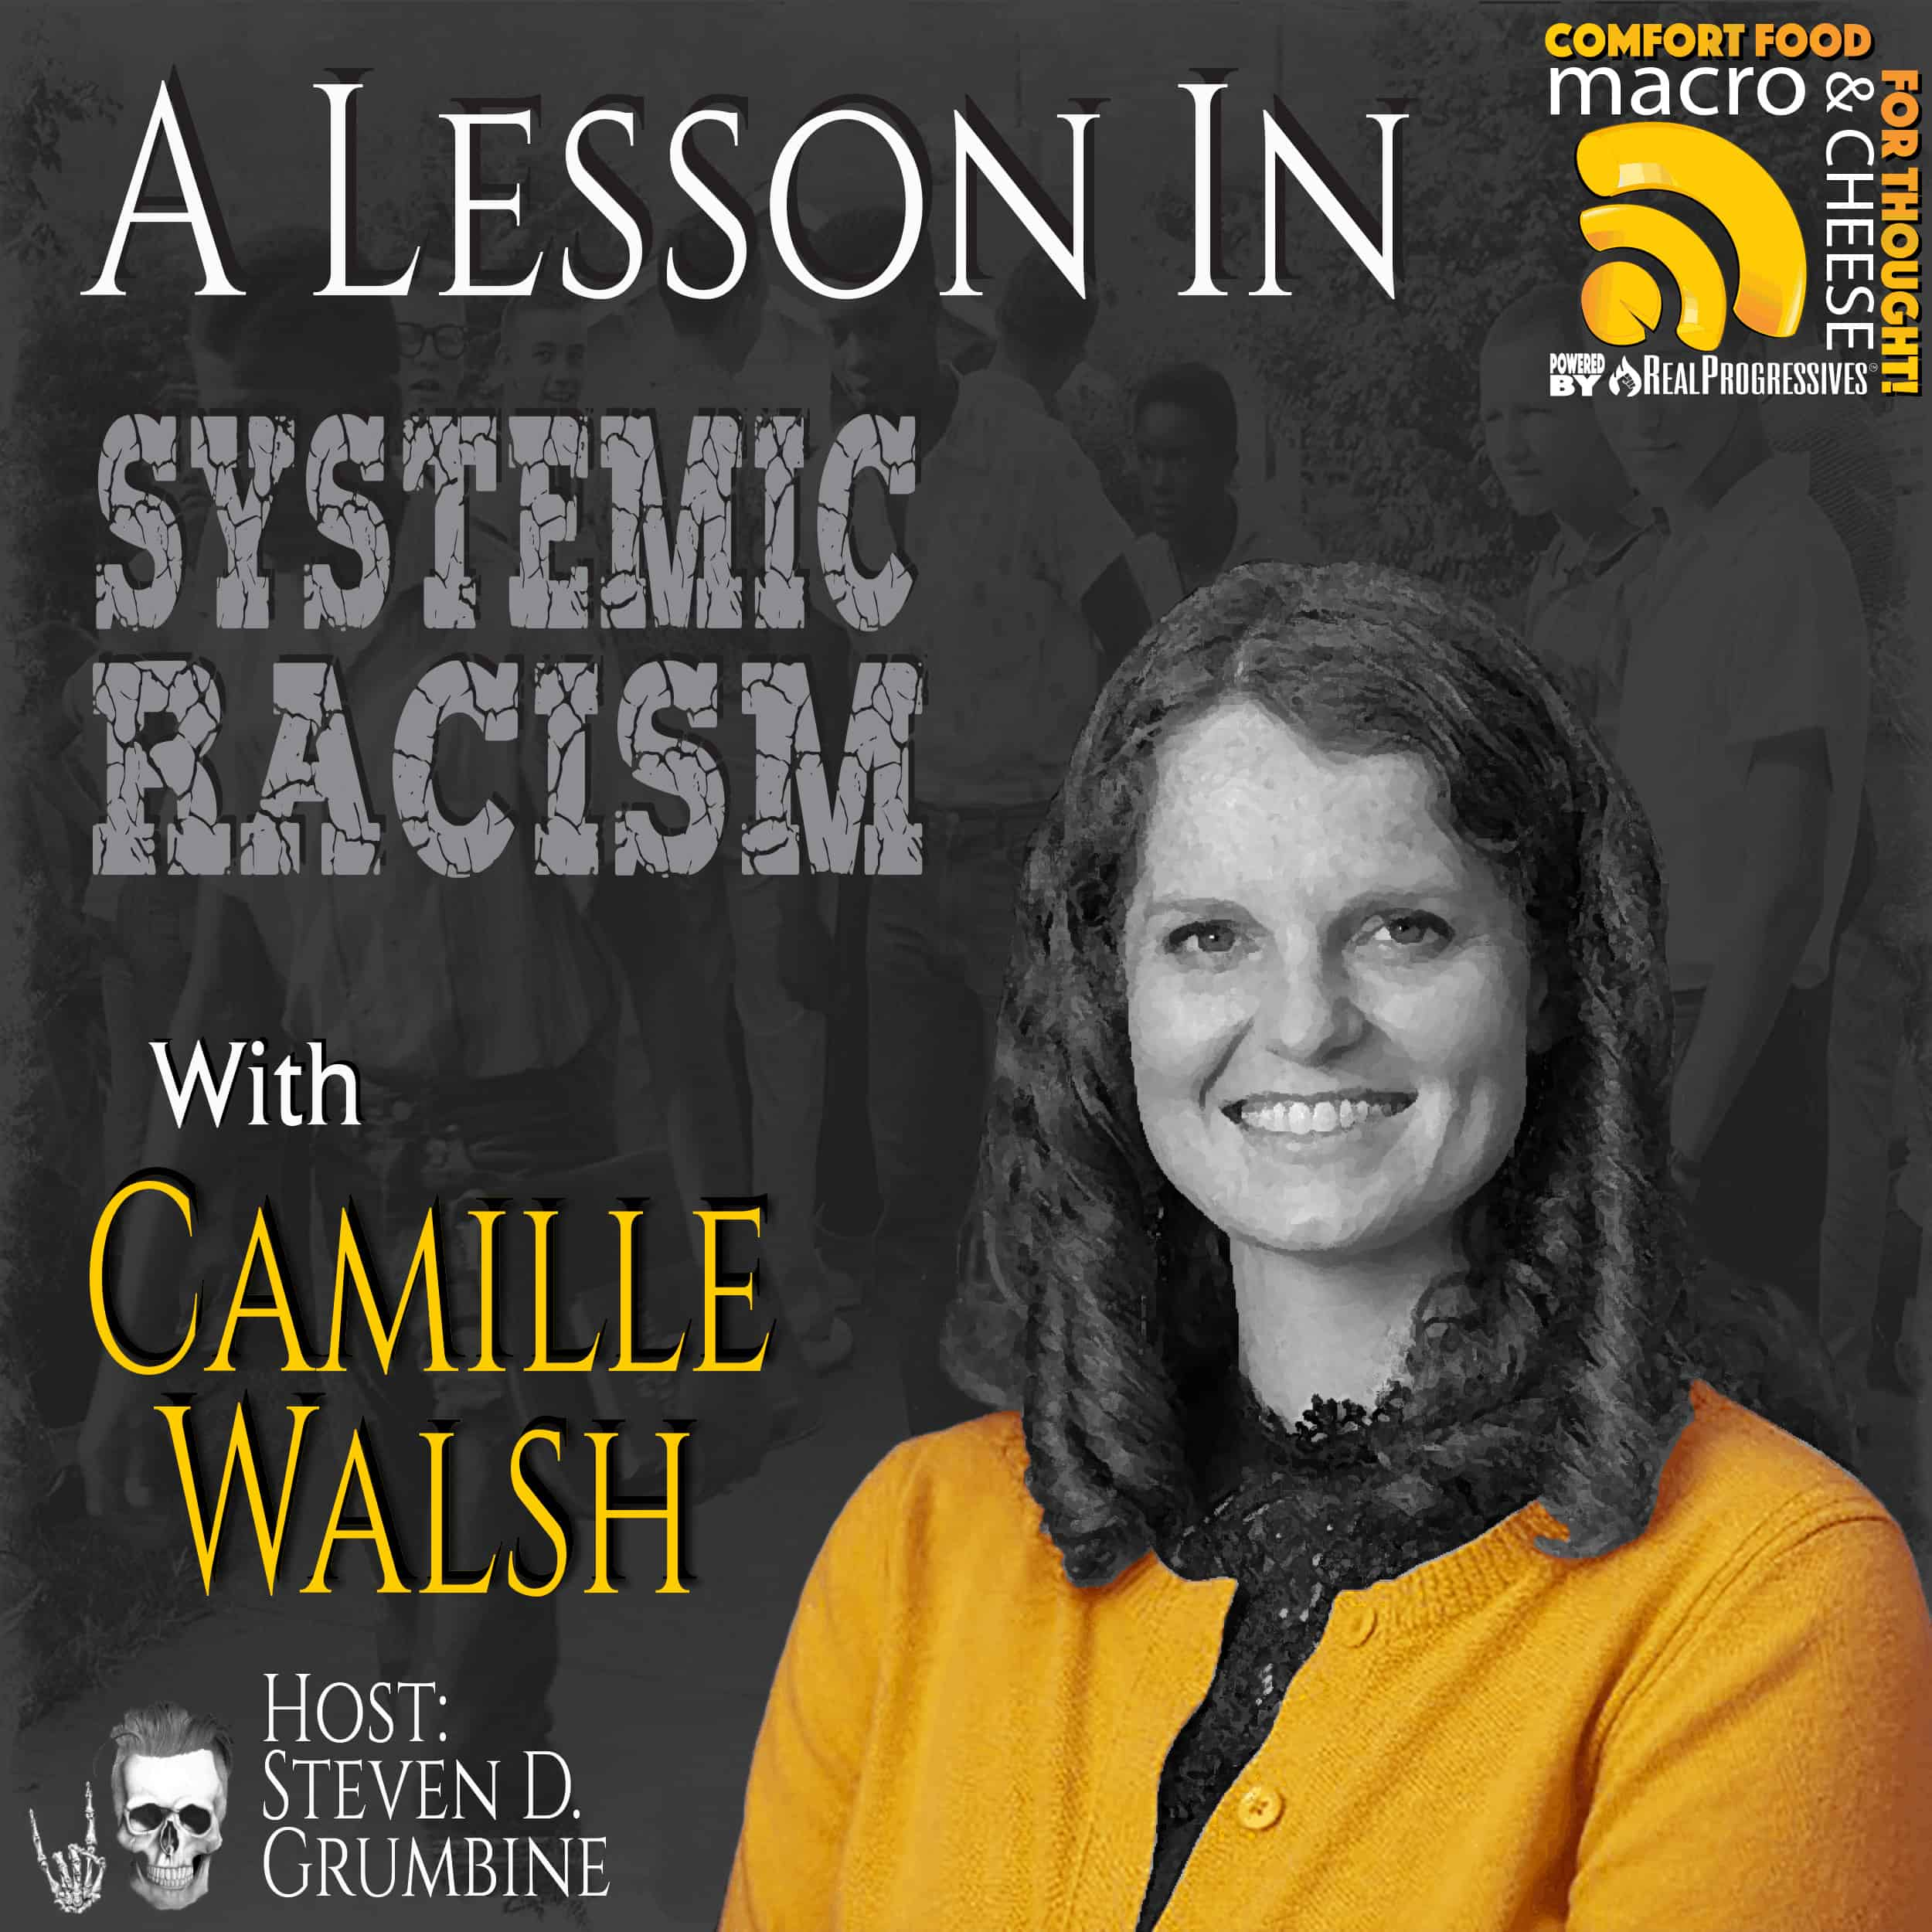 A Lesson in Systemic Racism with Camille Walsh